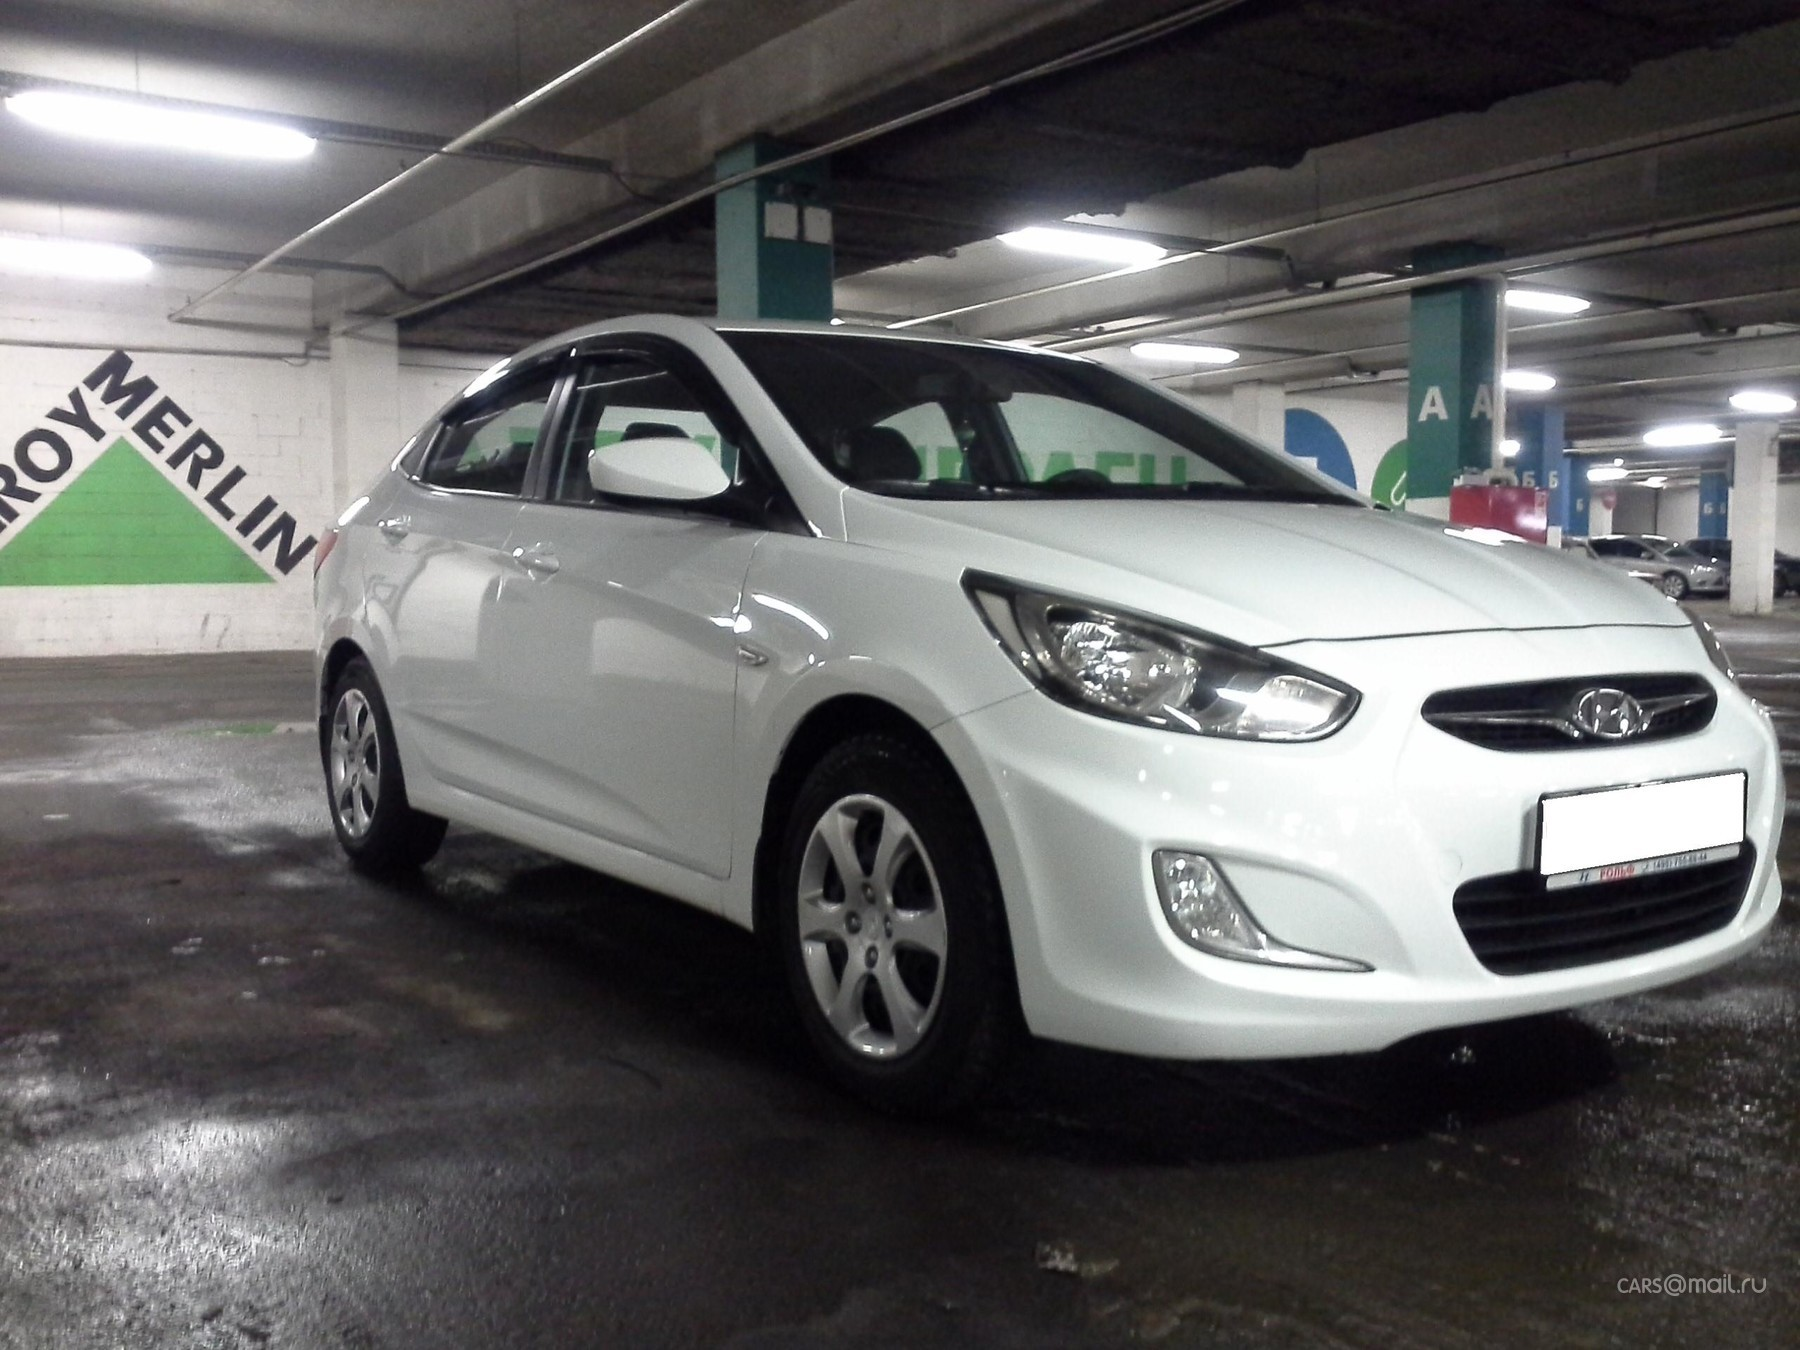 Hyundai Solaris 1.4 2012 photo - 1